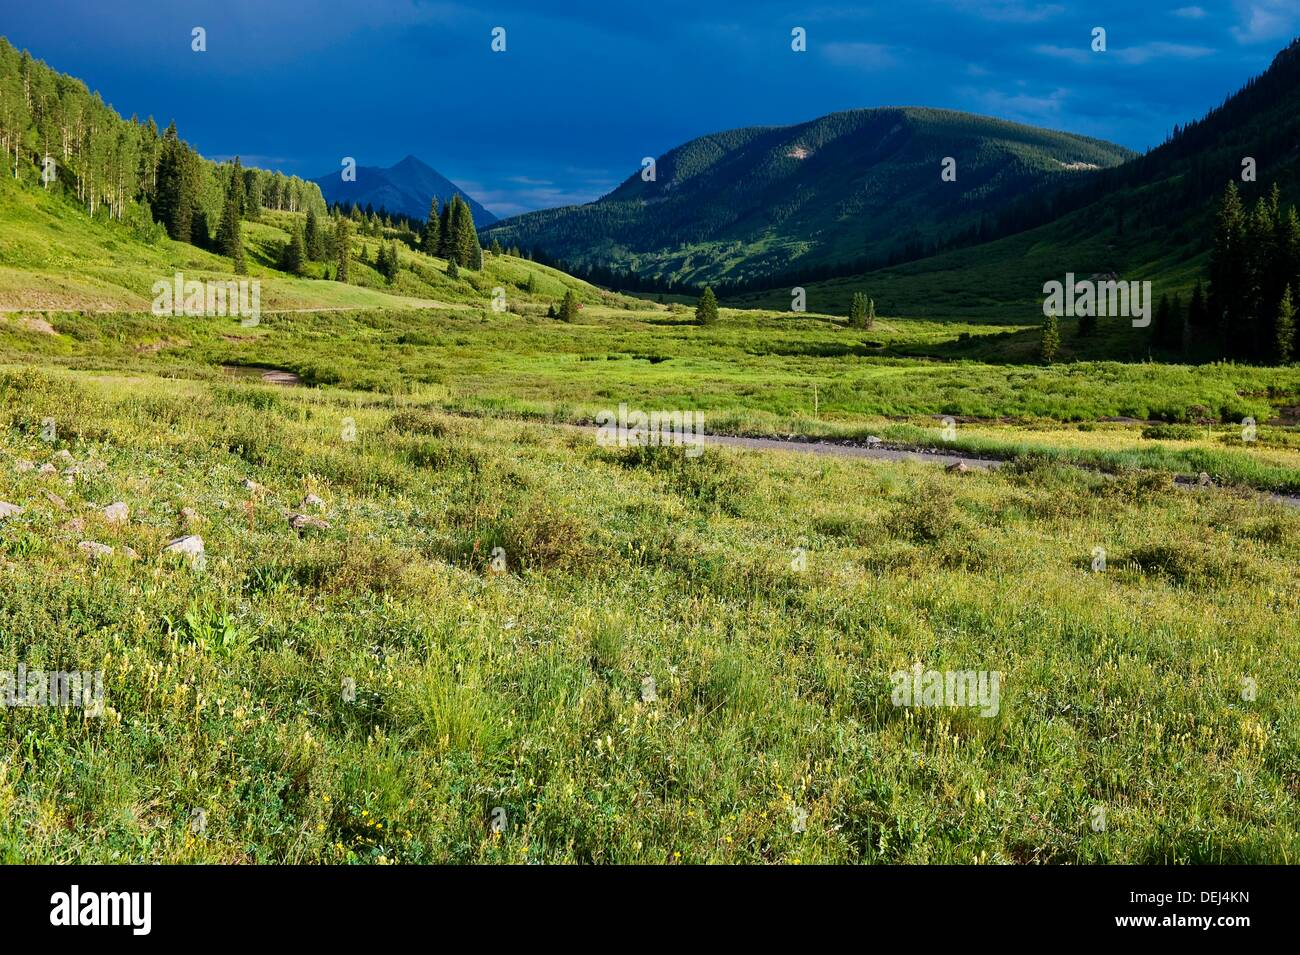 Landscape on Gothic Road, near Crested Butte, Colorado USA - Stock Image